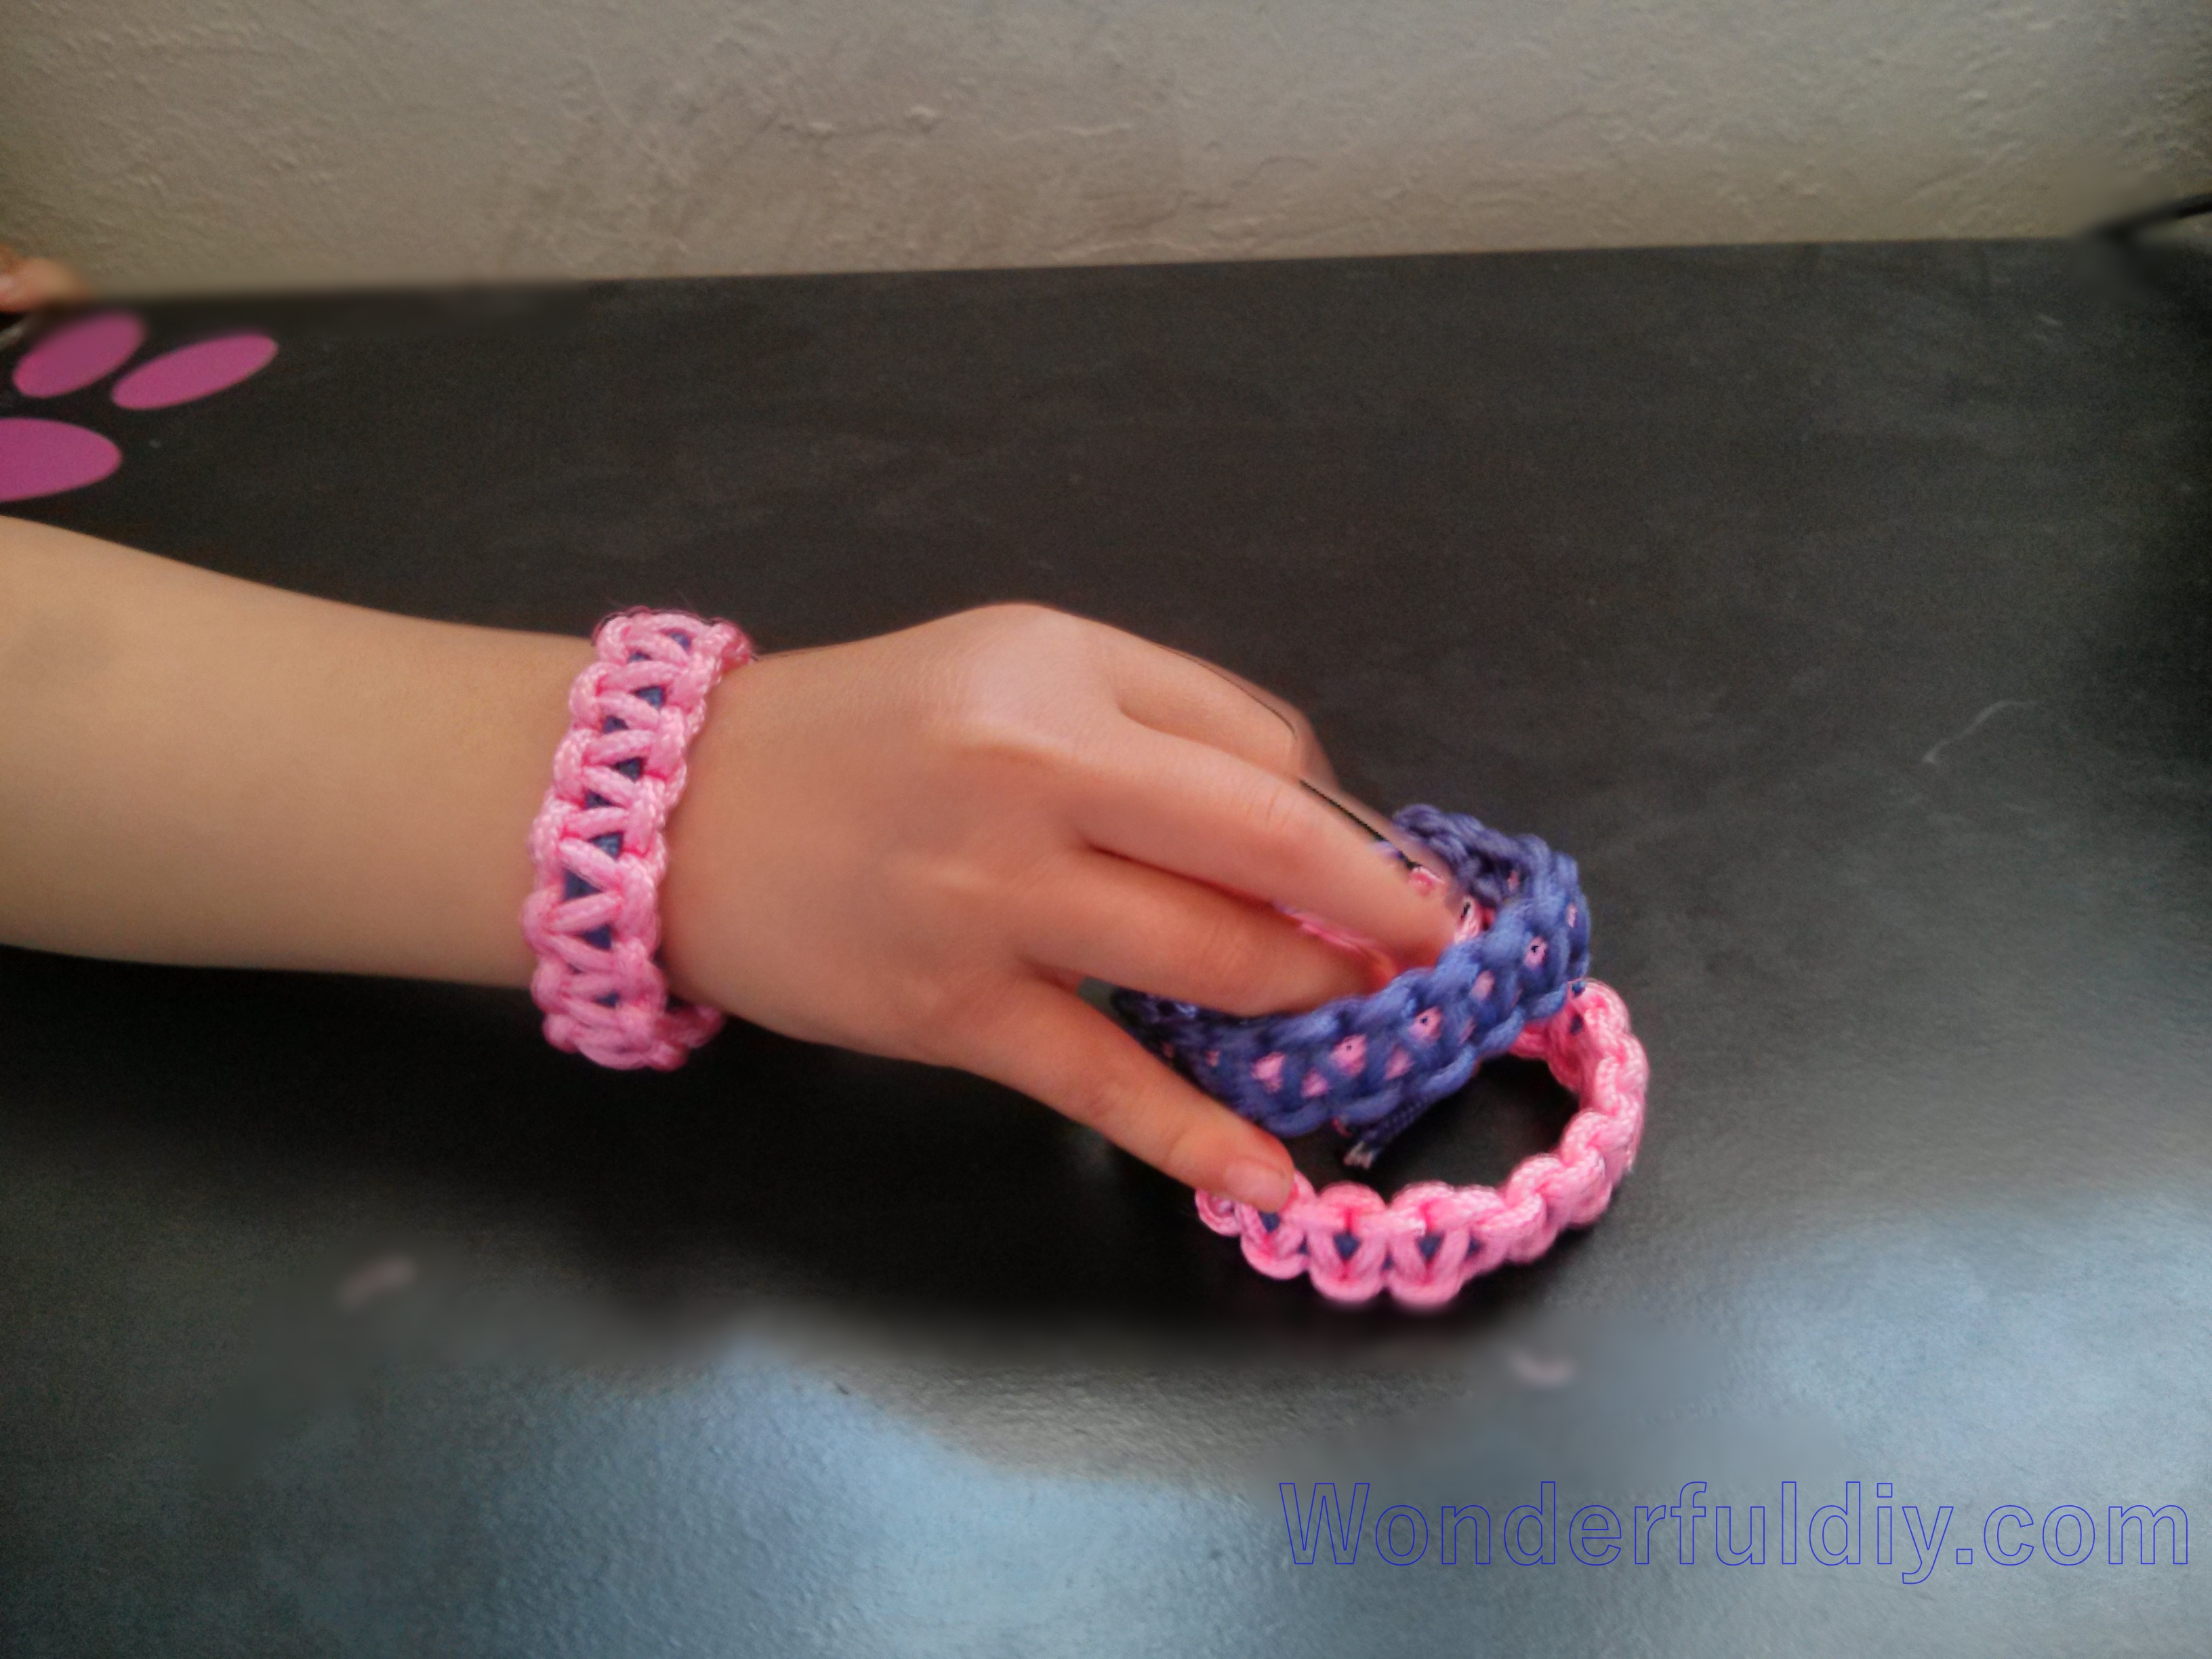 paracord-bracelet-tutorial-8 w